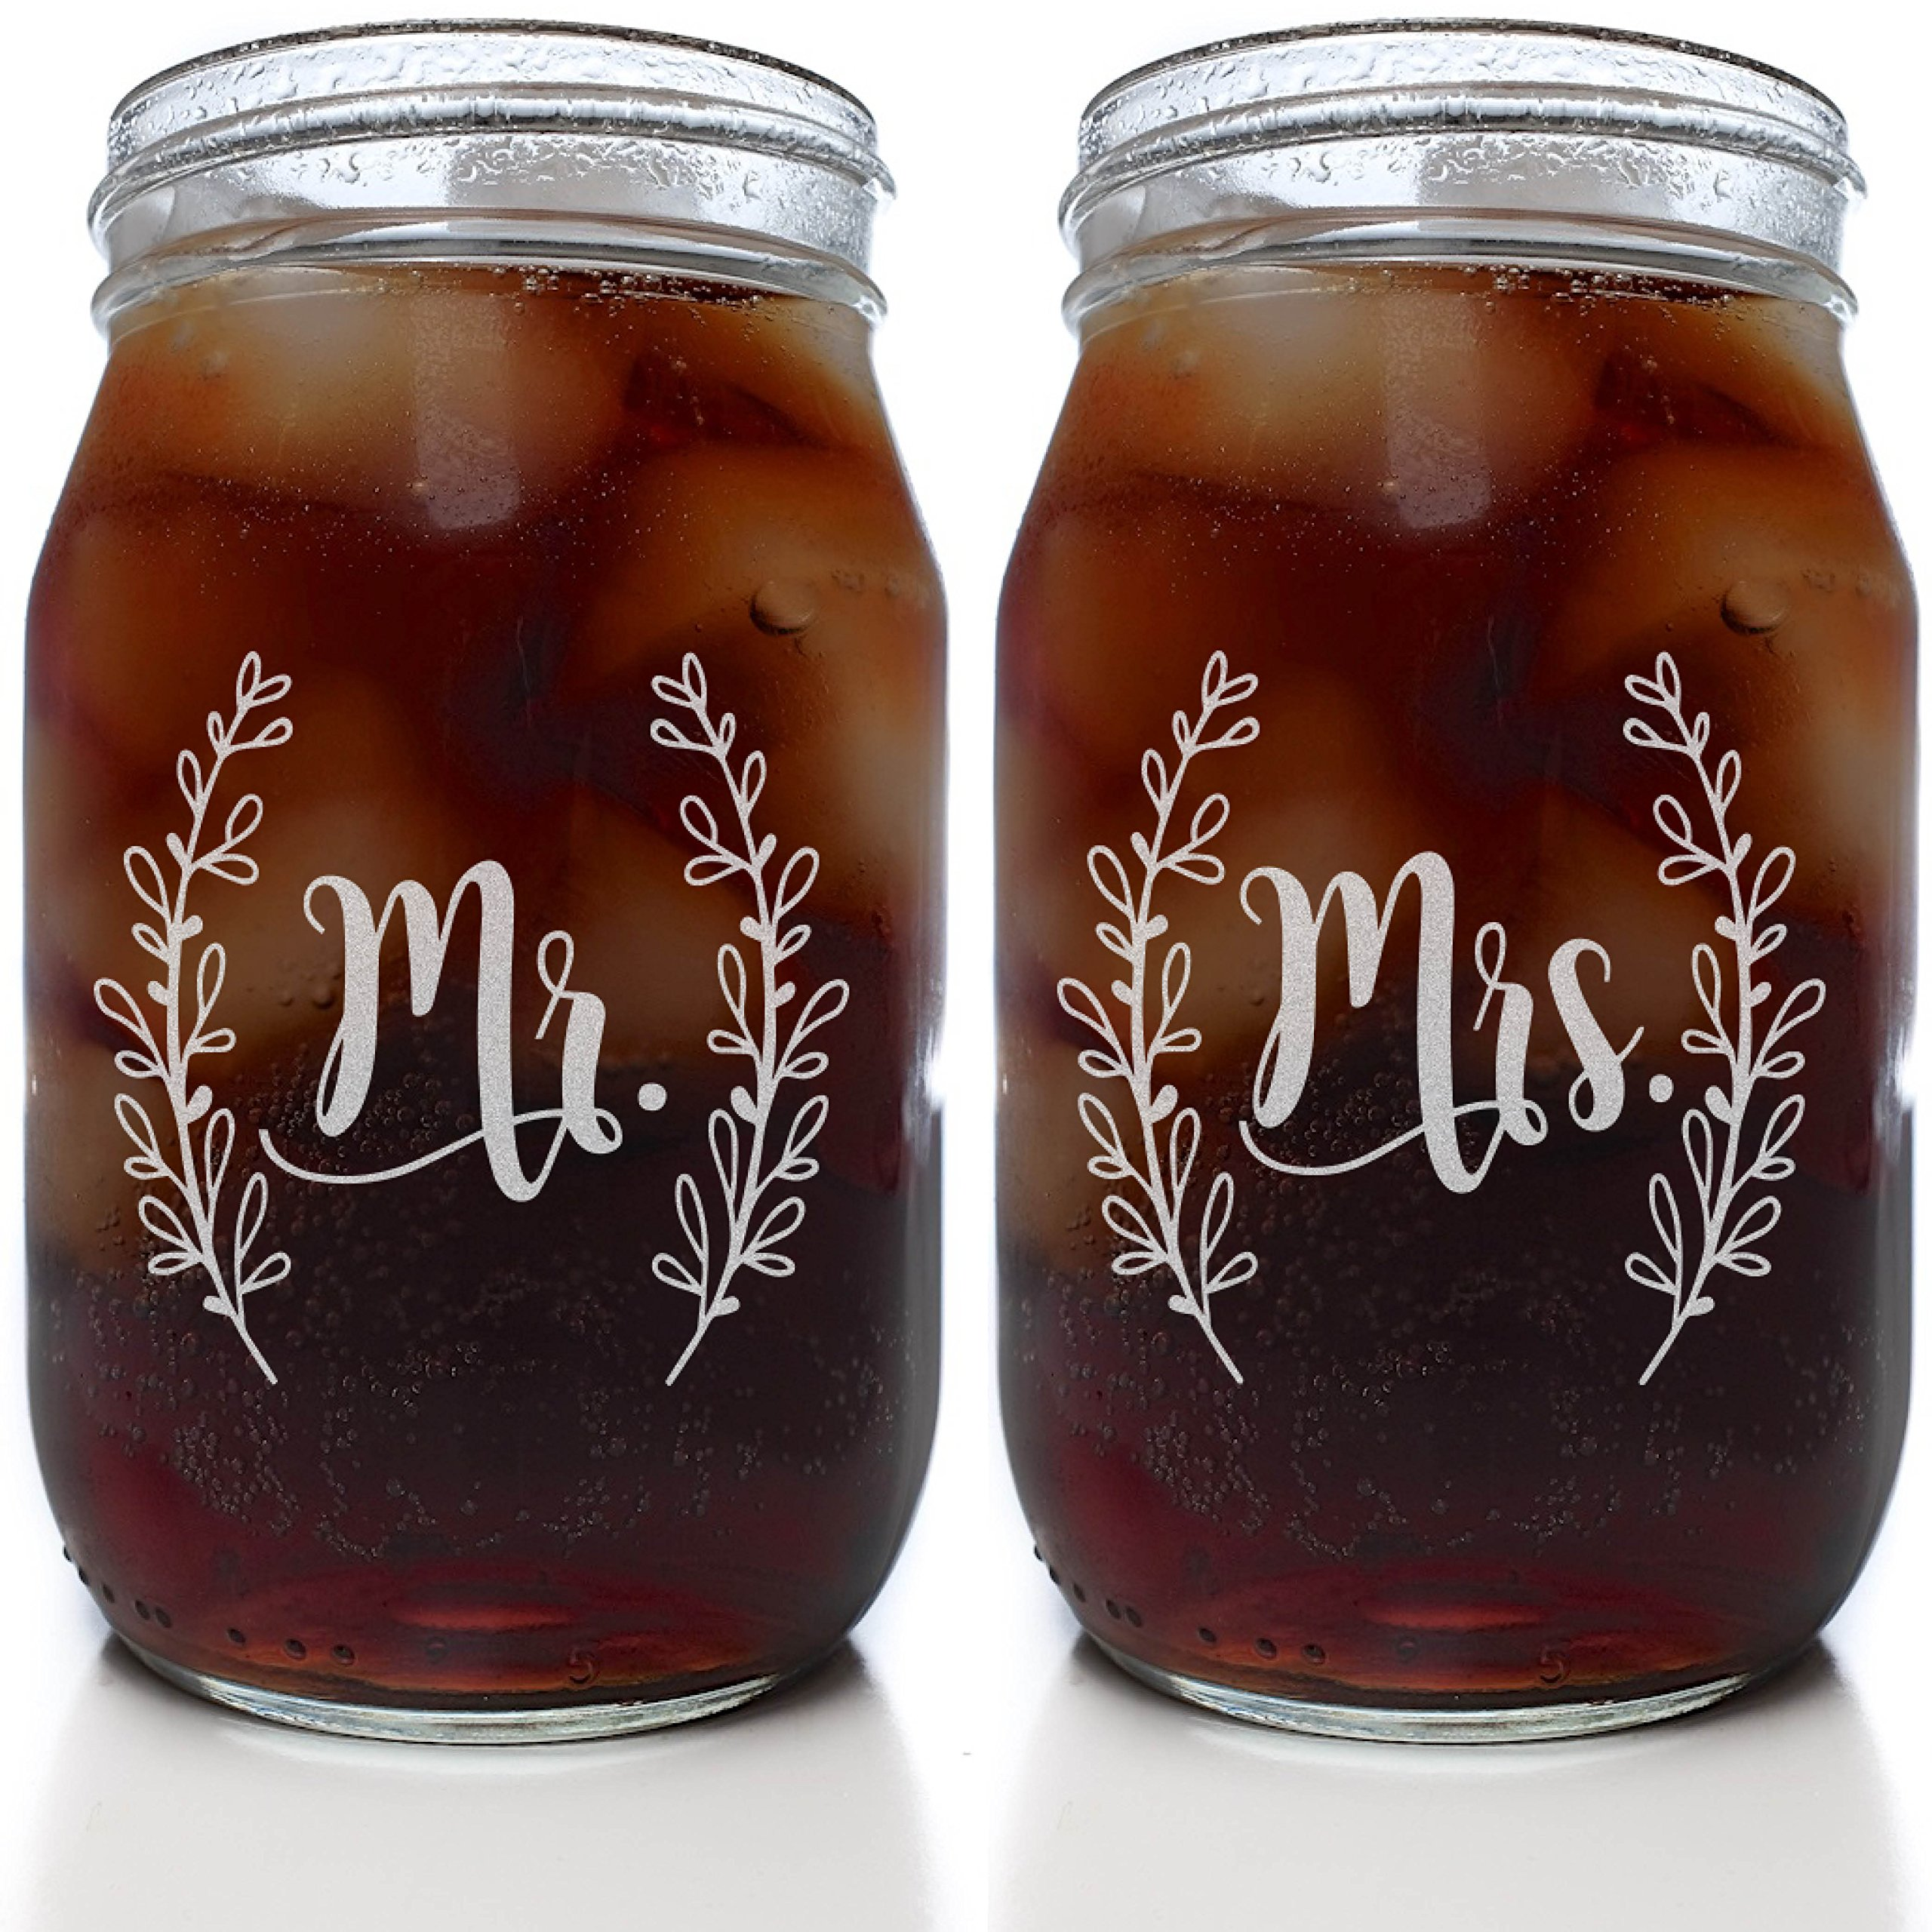 Mr & Mrs Mason Jar Set in Cute Script (Set of 2 Clear 16 oz. Mason Jar Glasses) by Alder House Market